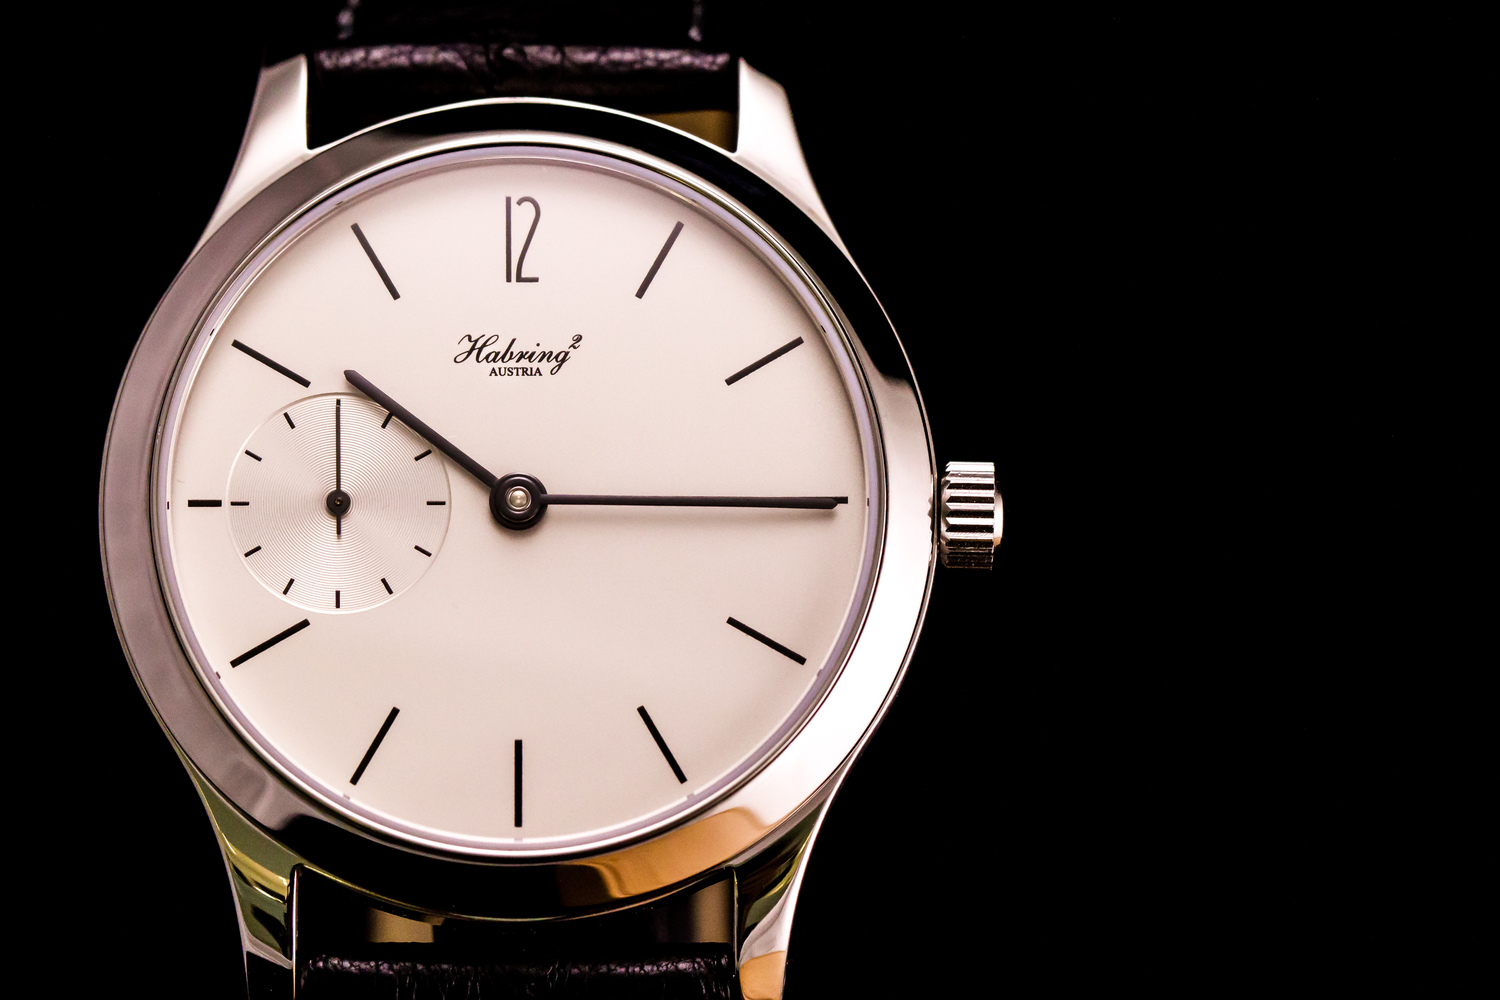 8 German Watch Brands That Put The Swiss Is Best Argument To Bed